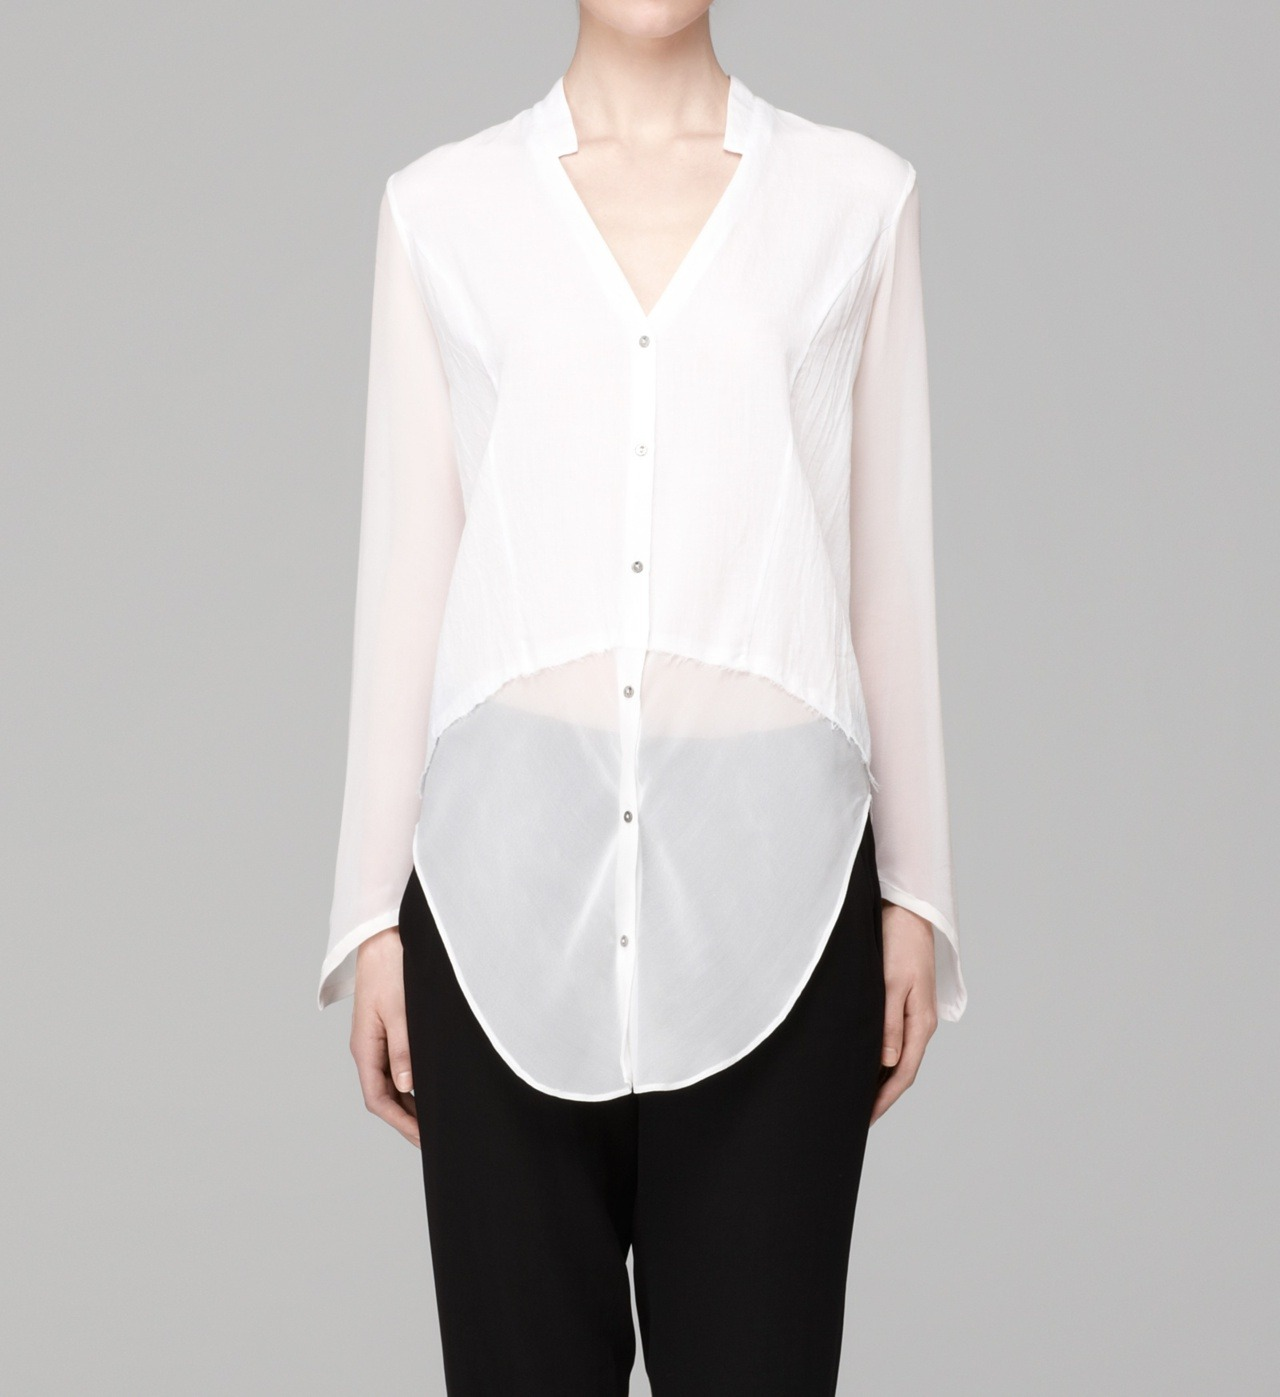 hlangjournal:  THE WHITE BUTTON DOWN, REINTERPRETED.  It's a fabric mash up with sheer cuts and opaque angles. Shop the Element Shirt.